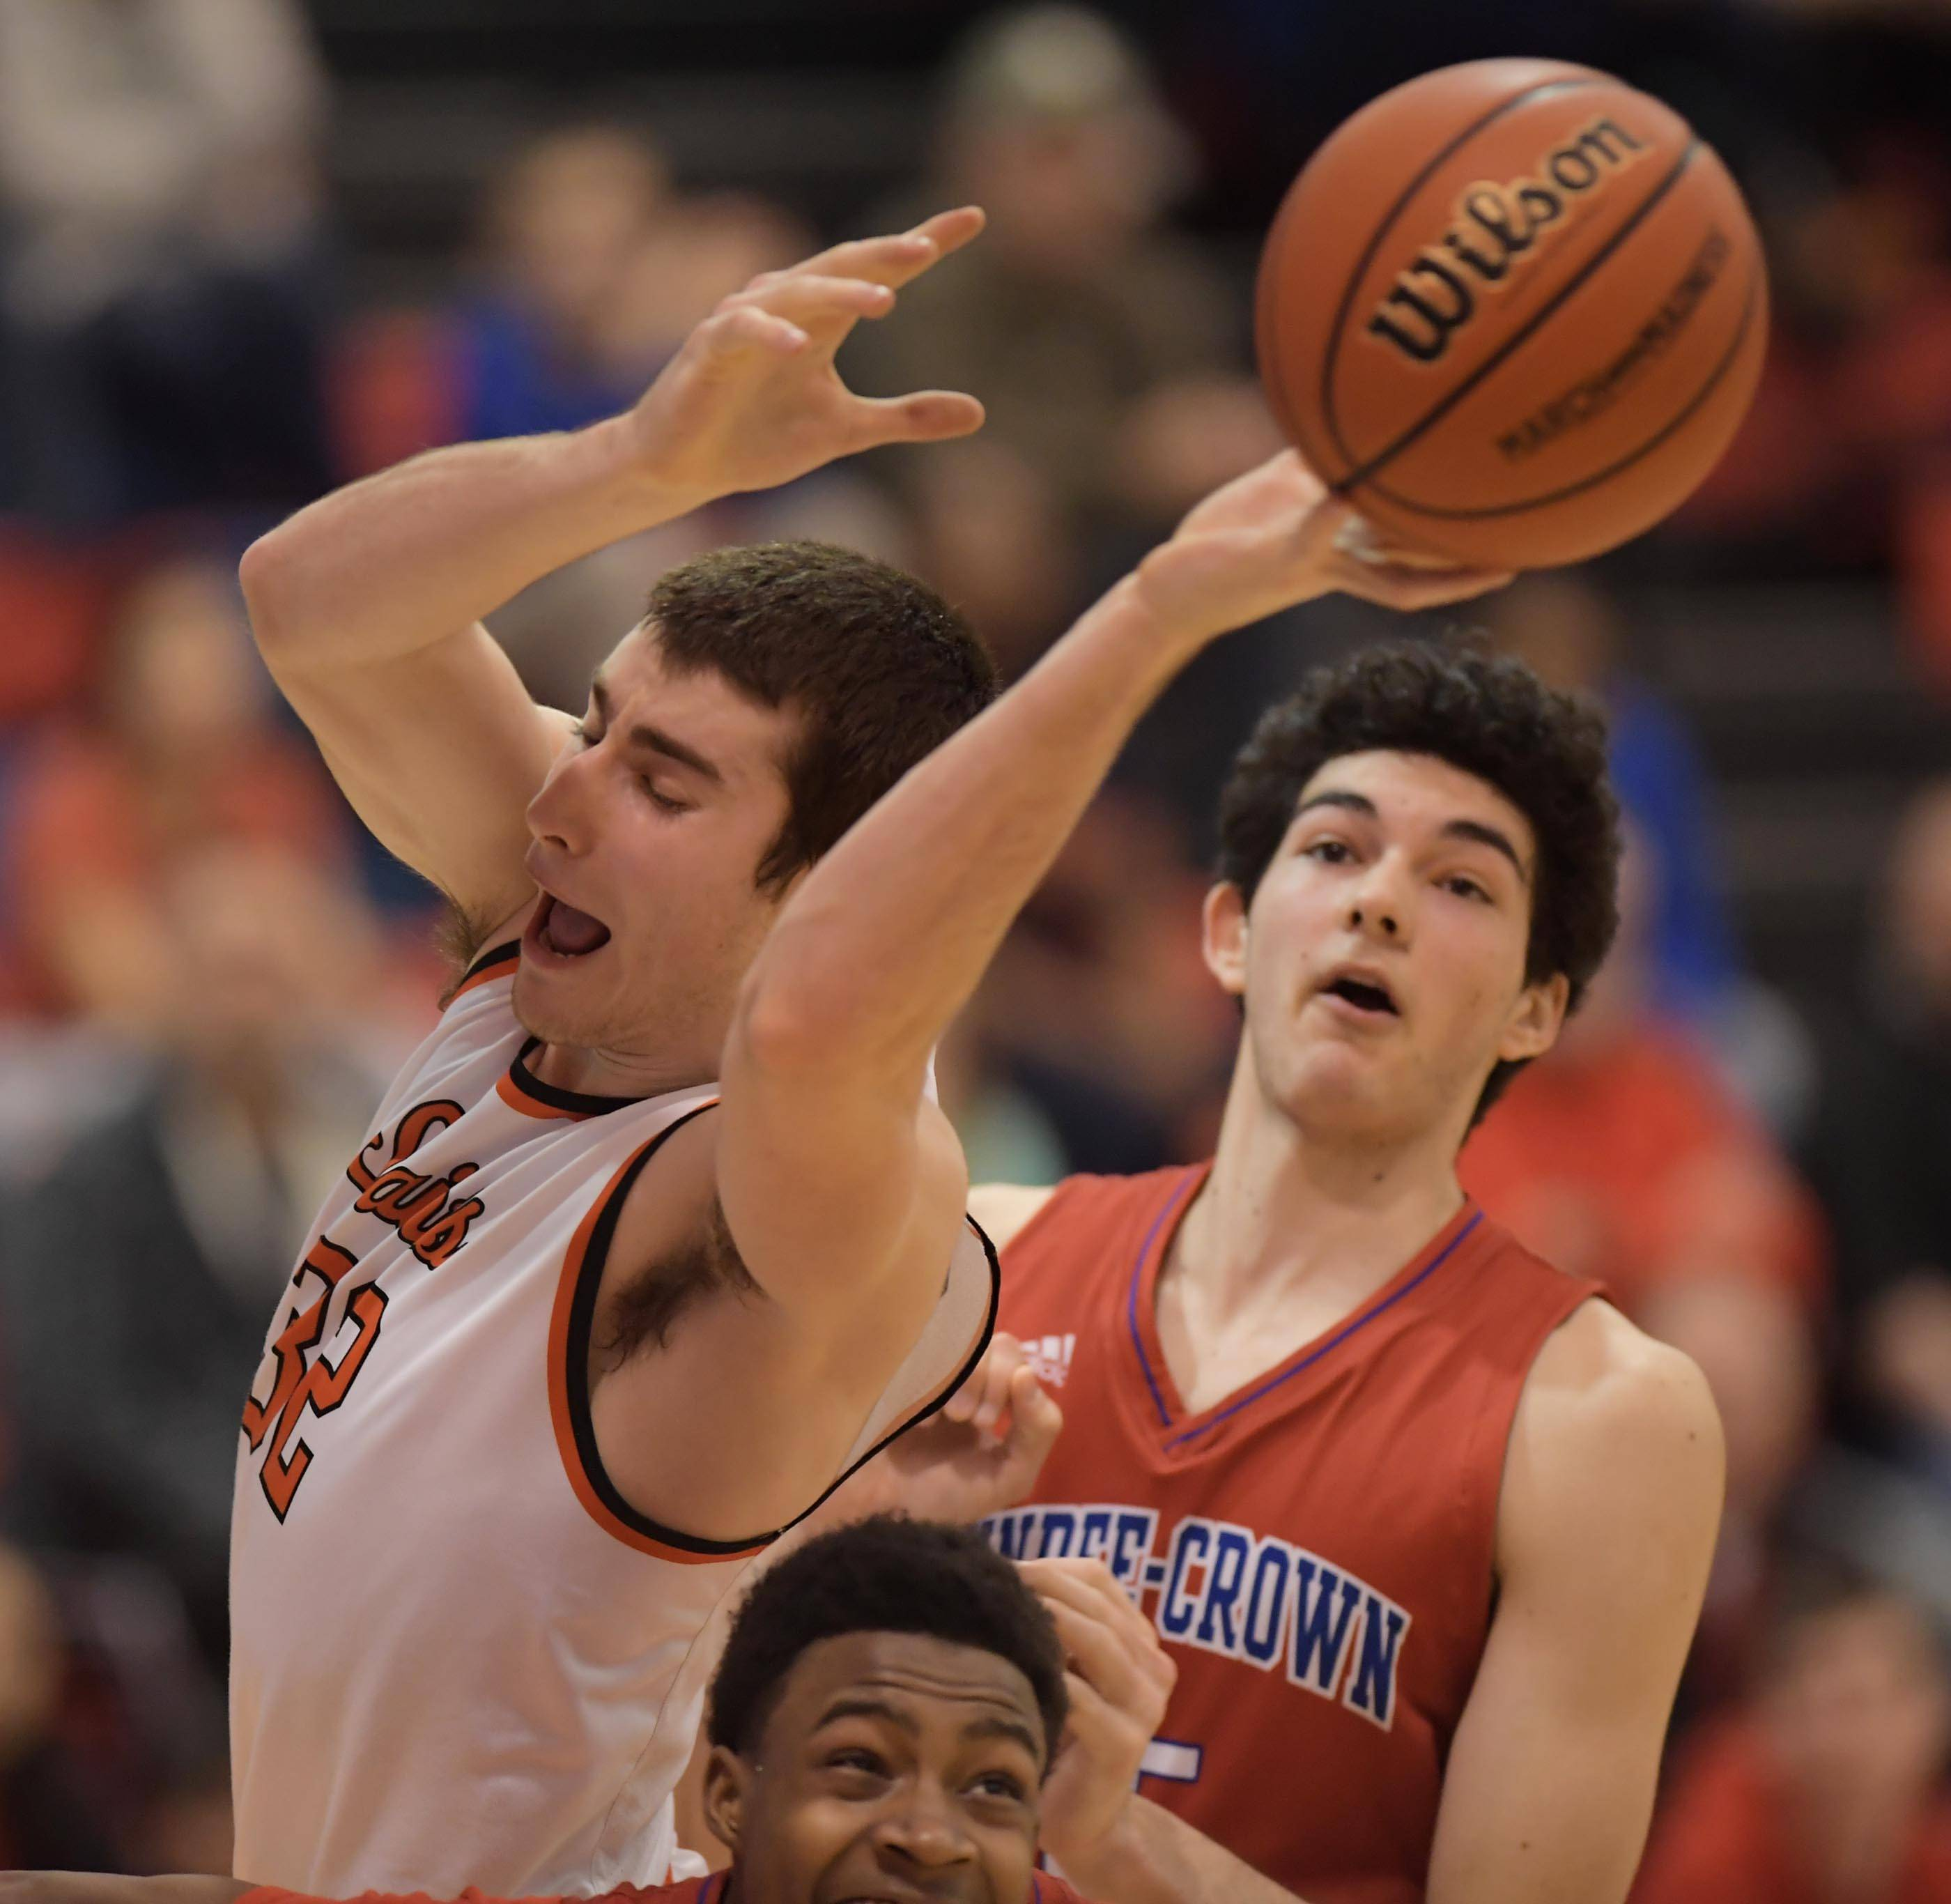 St. Charles East's Justin Hardy loses the ball around Dundee-Crown's Damarion Butler and Gabriel Bergeron in the Class 4A Dundee-Crown boys basketball semifinal regional game Wednesday.